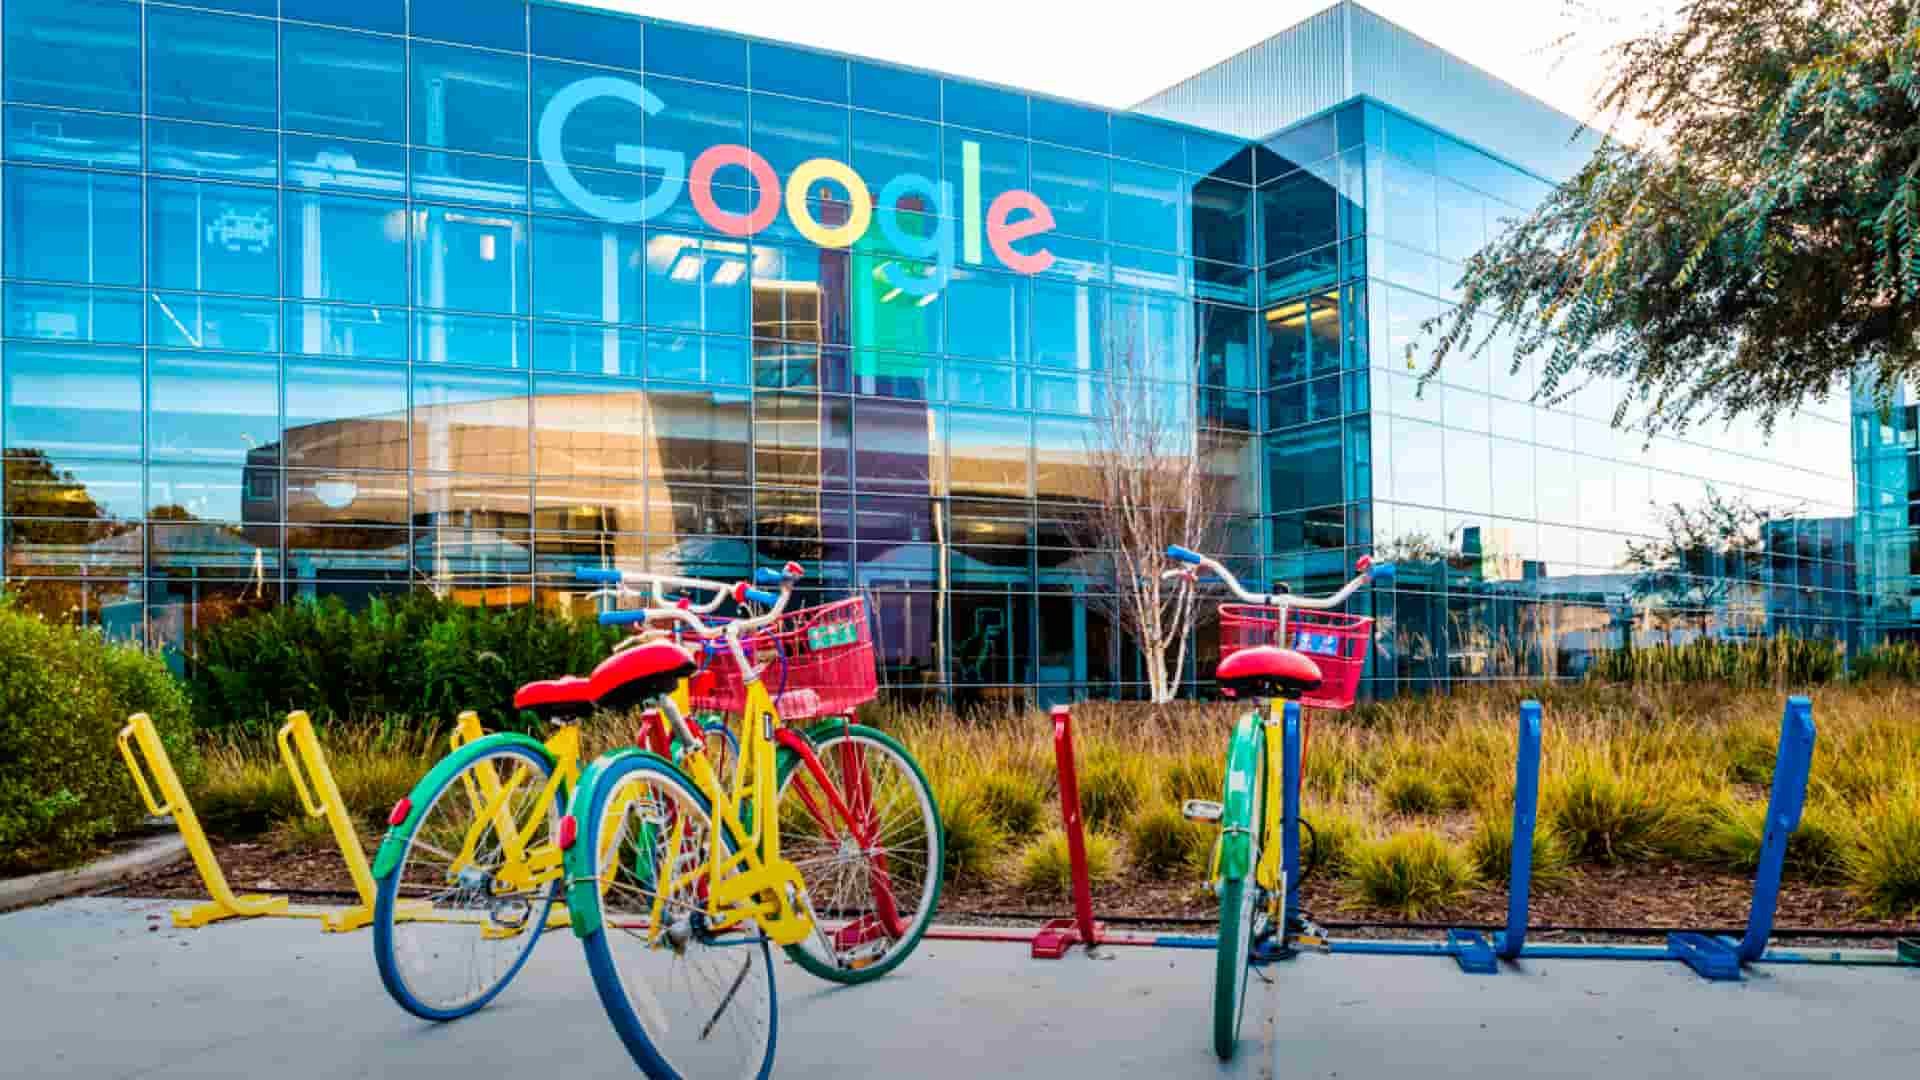 Google in Mountain View‍